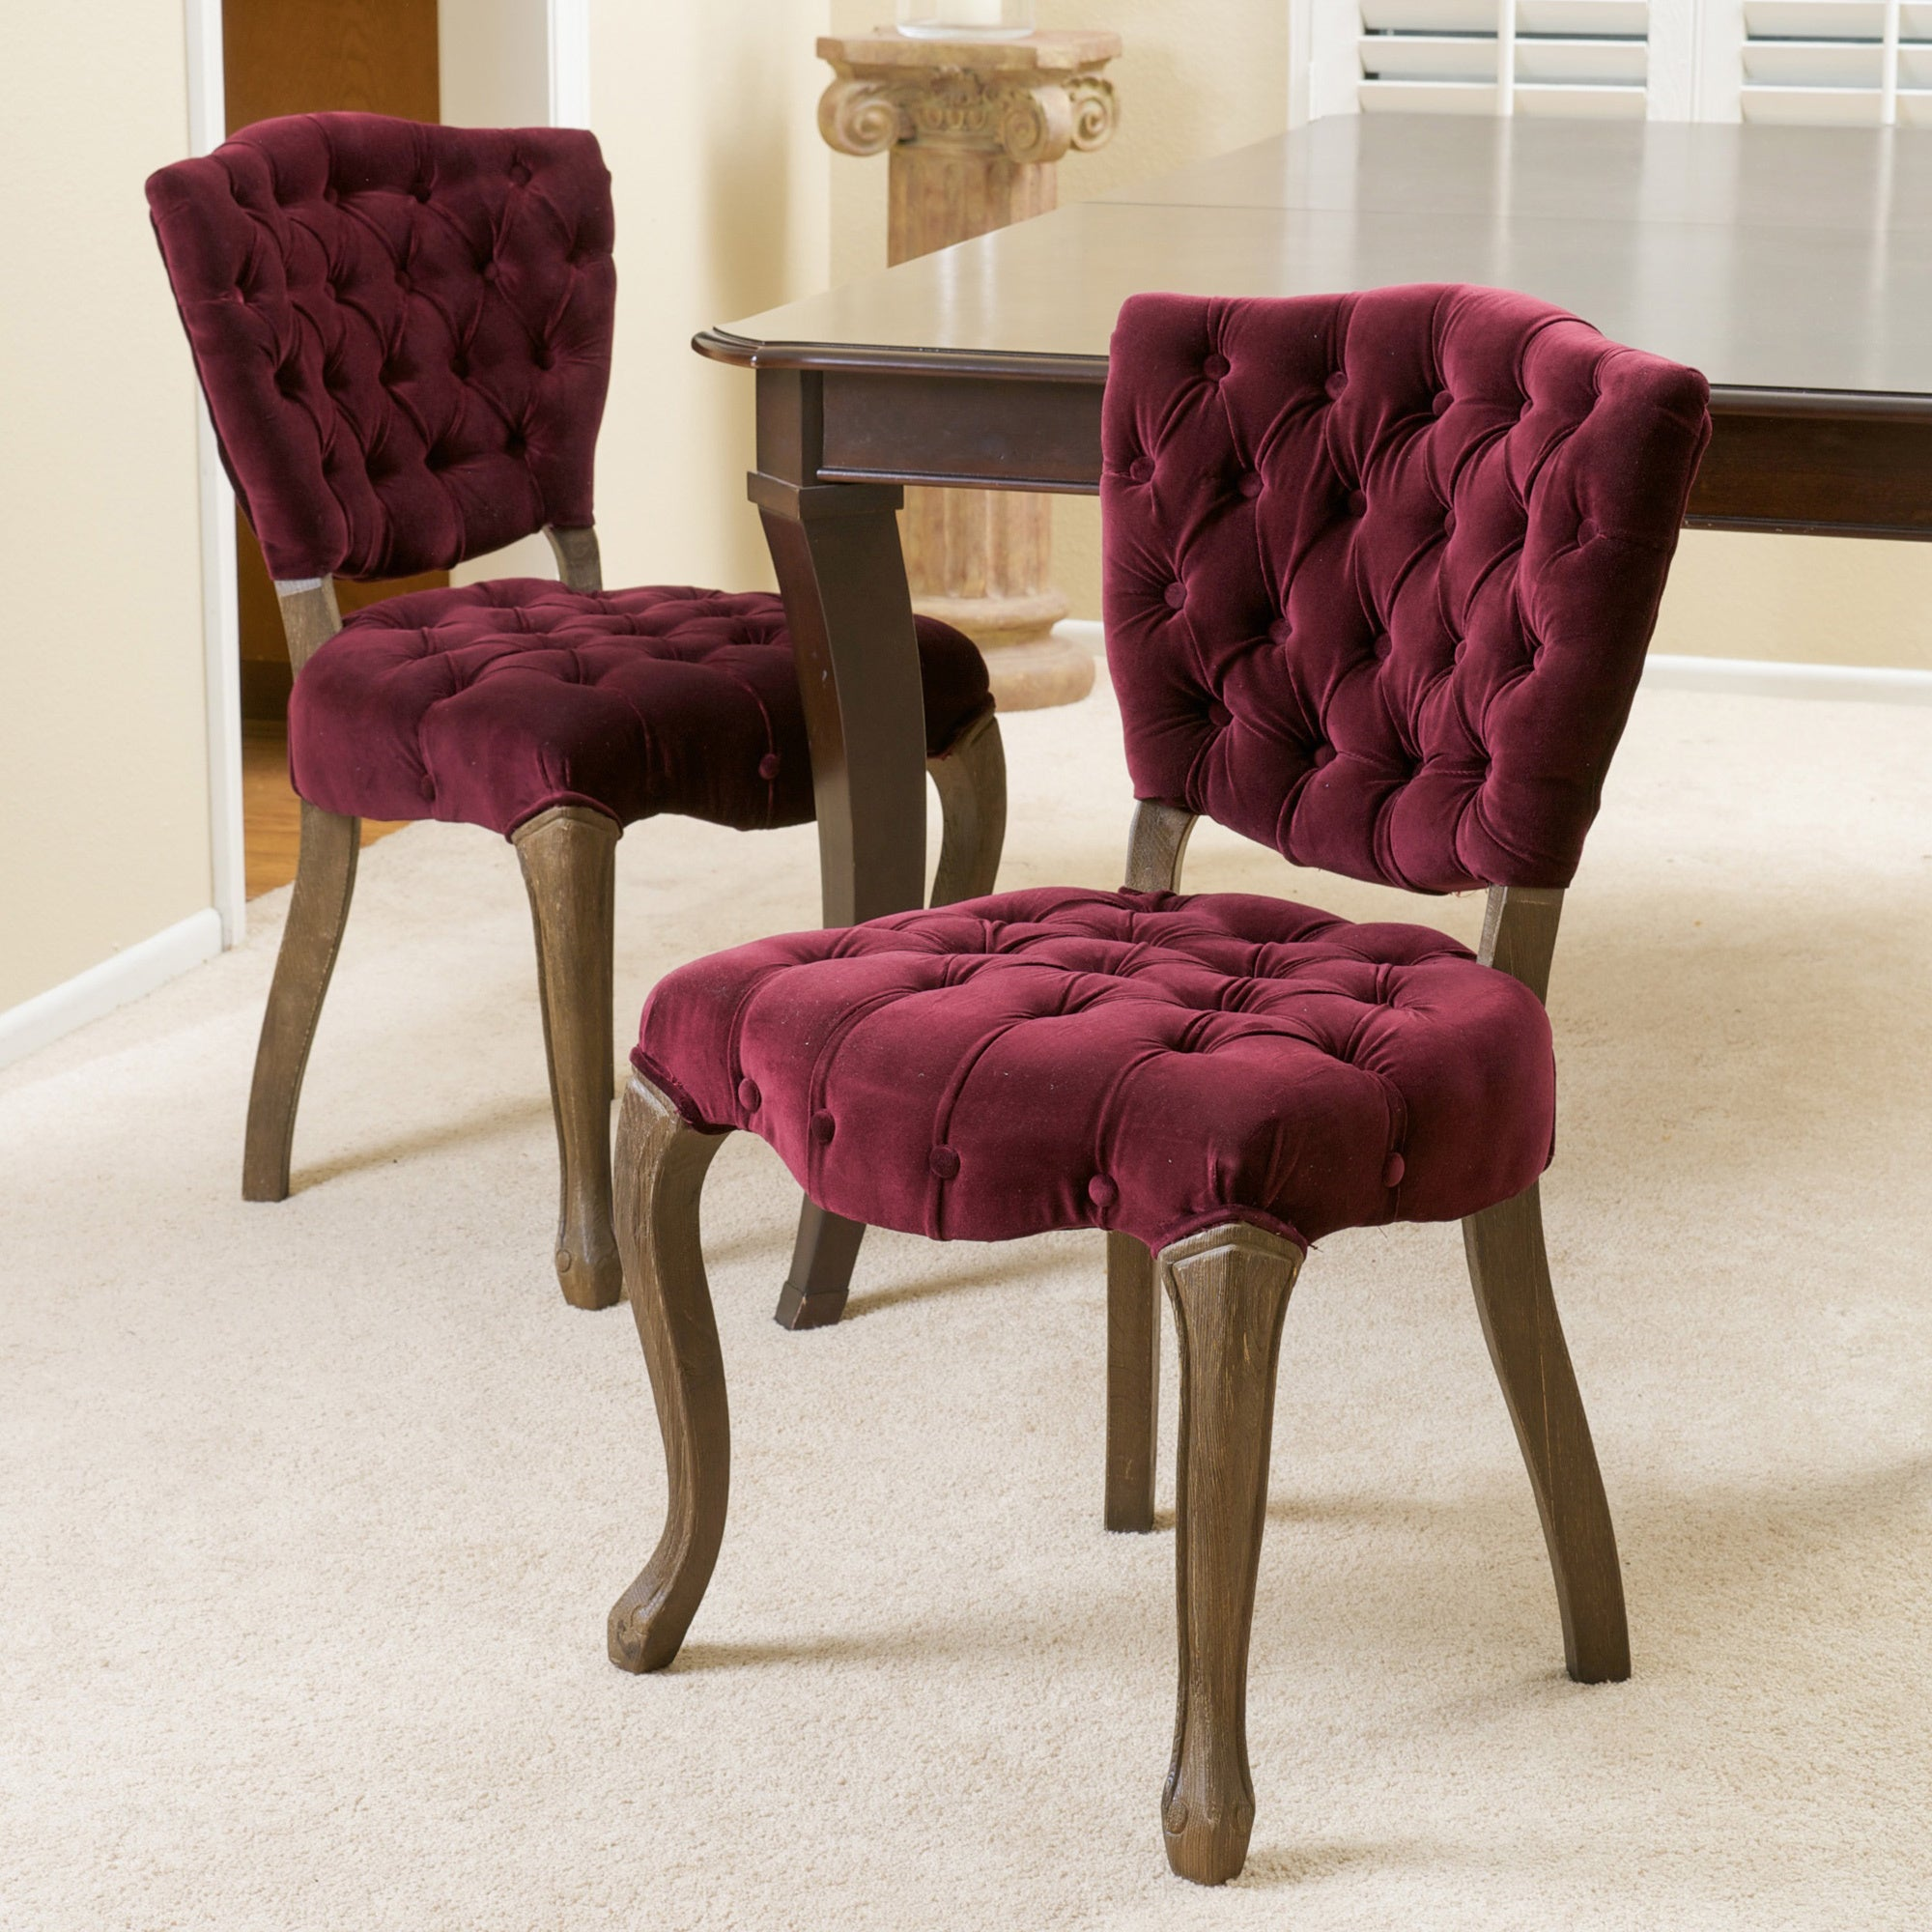 Shop Bates Tufted Dark Purple Fabric Dining Chairs Set Of